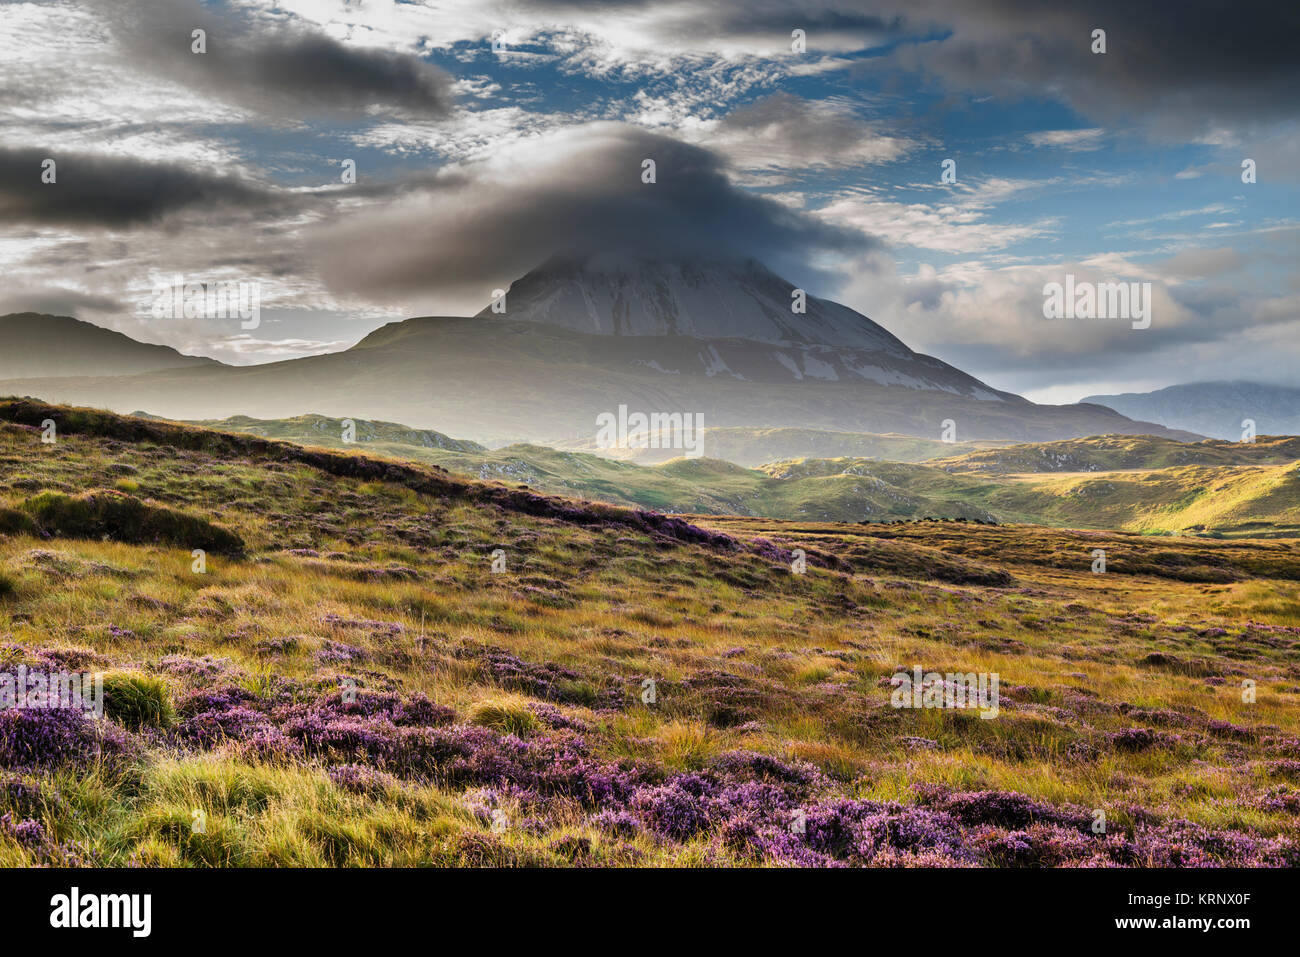 looking-towards-mount-errigal-one-of-irelands-most-iconic-mountains-KRNX0F.jpg